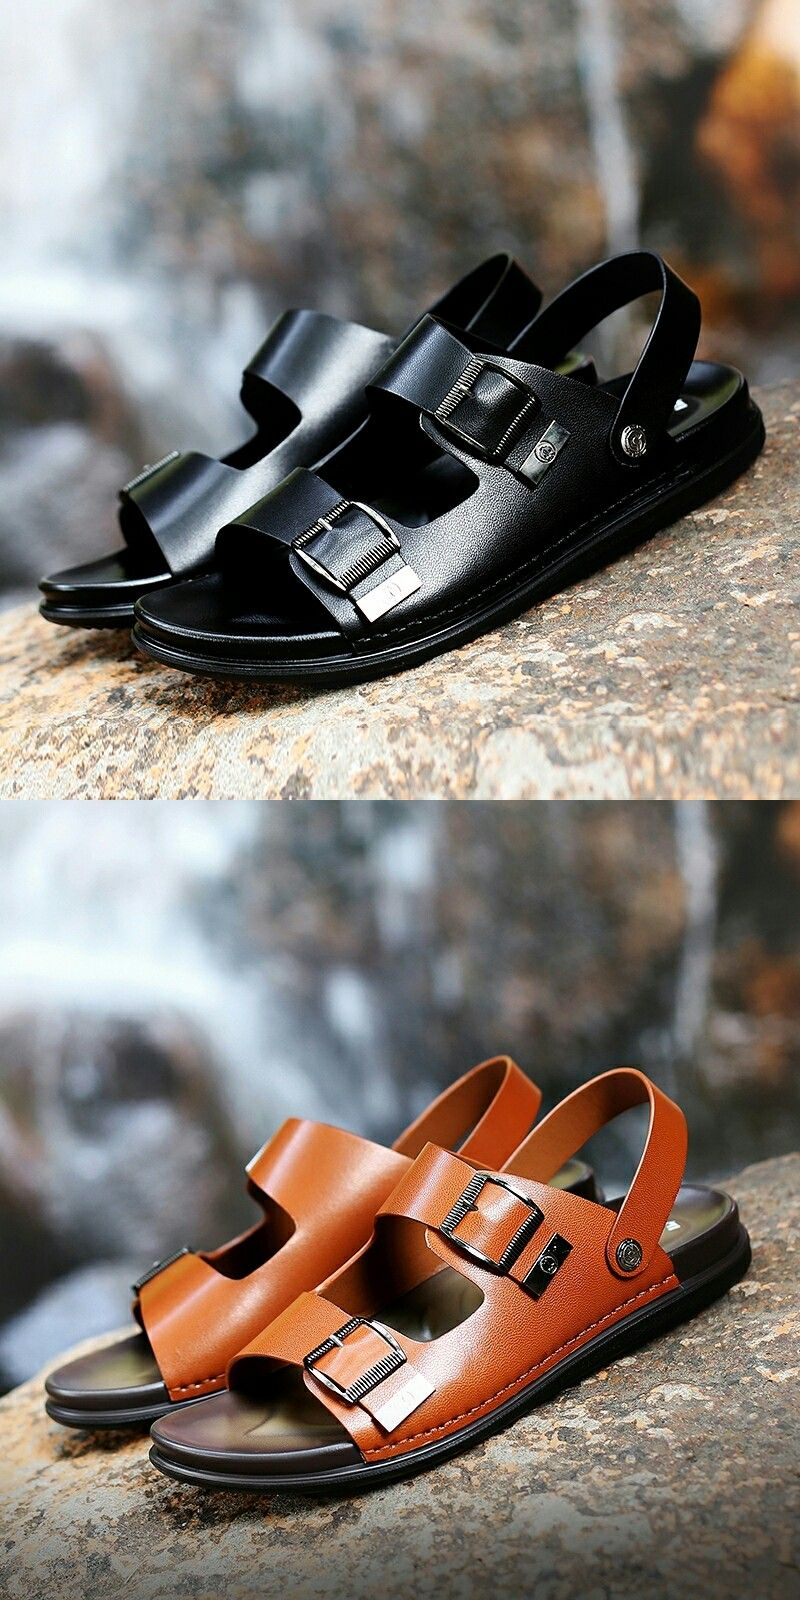 US $26 4  Prelesty Summer Men's Leather Business Sandals Breathable Buckle Design is part of information-technology - information-technology